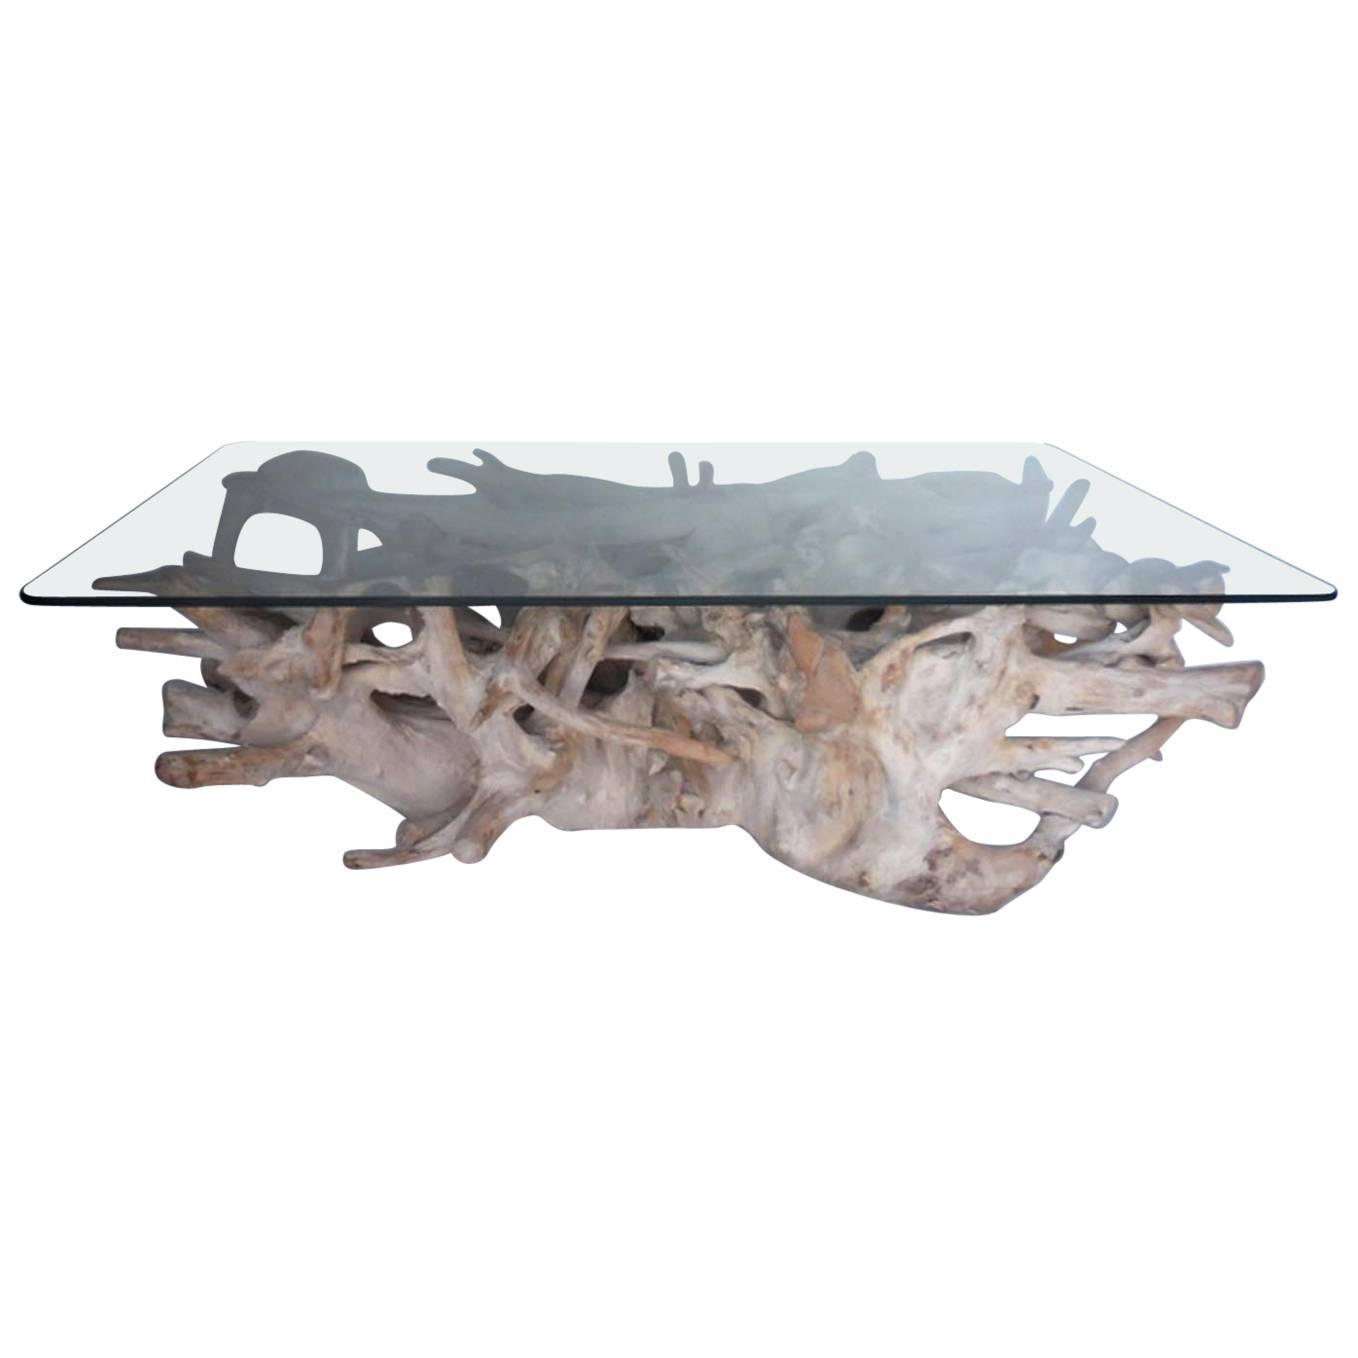 Sculptural teak root coffee table with glass top at 1stdibs geotapseo Image collections